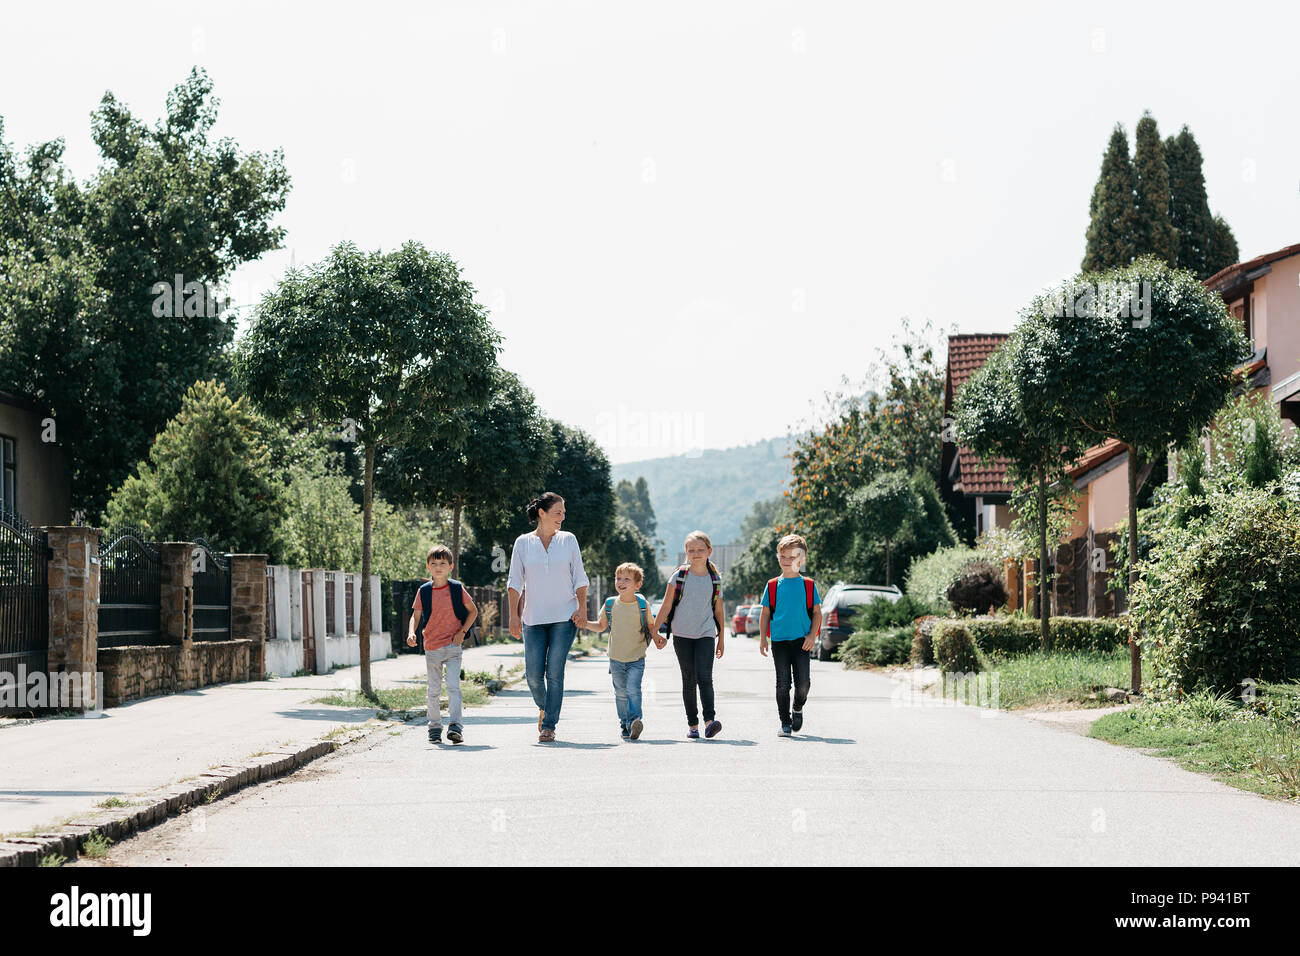 Mother and her children on the morning way to school. A group of primary students walking to school with an adult. - Stock Image